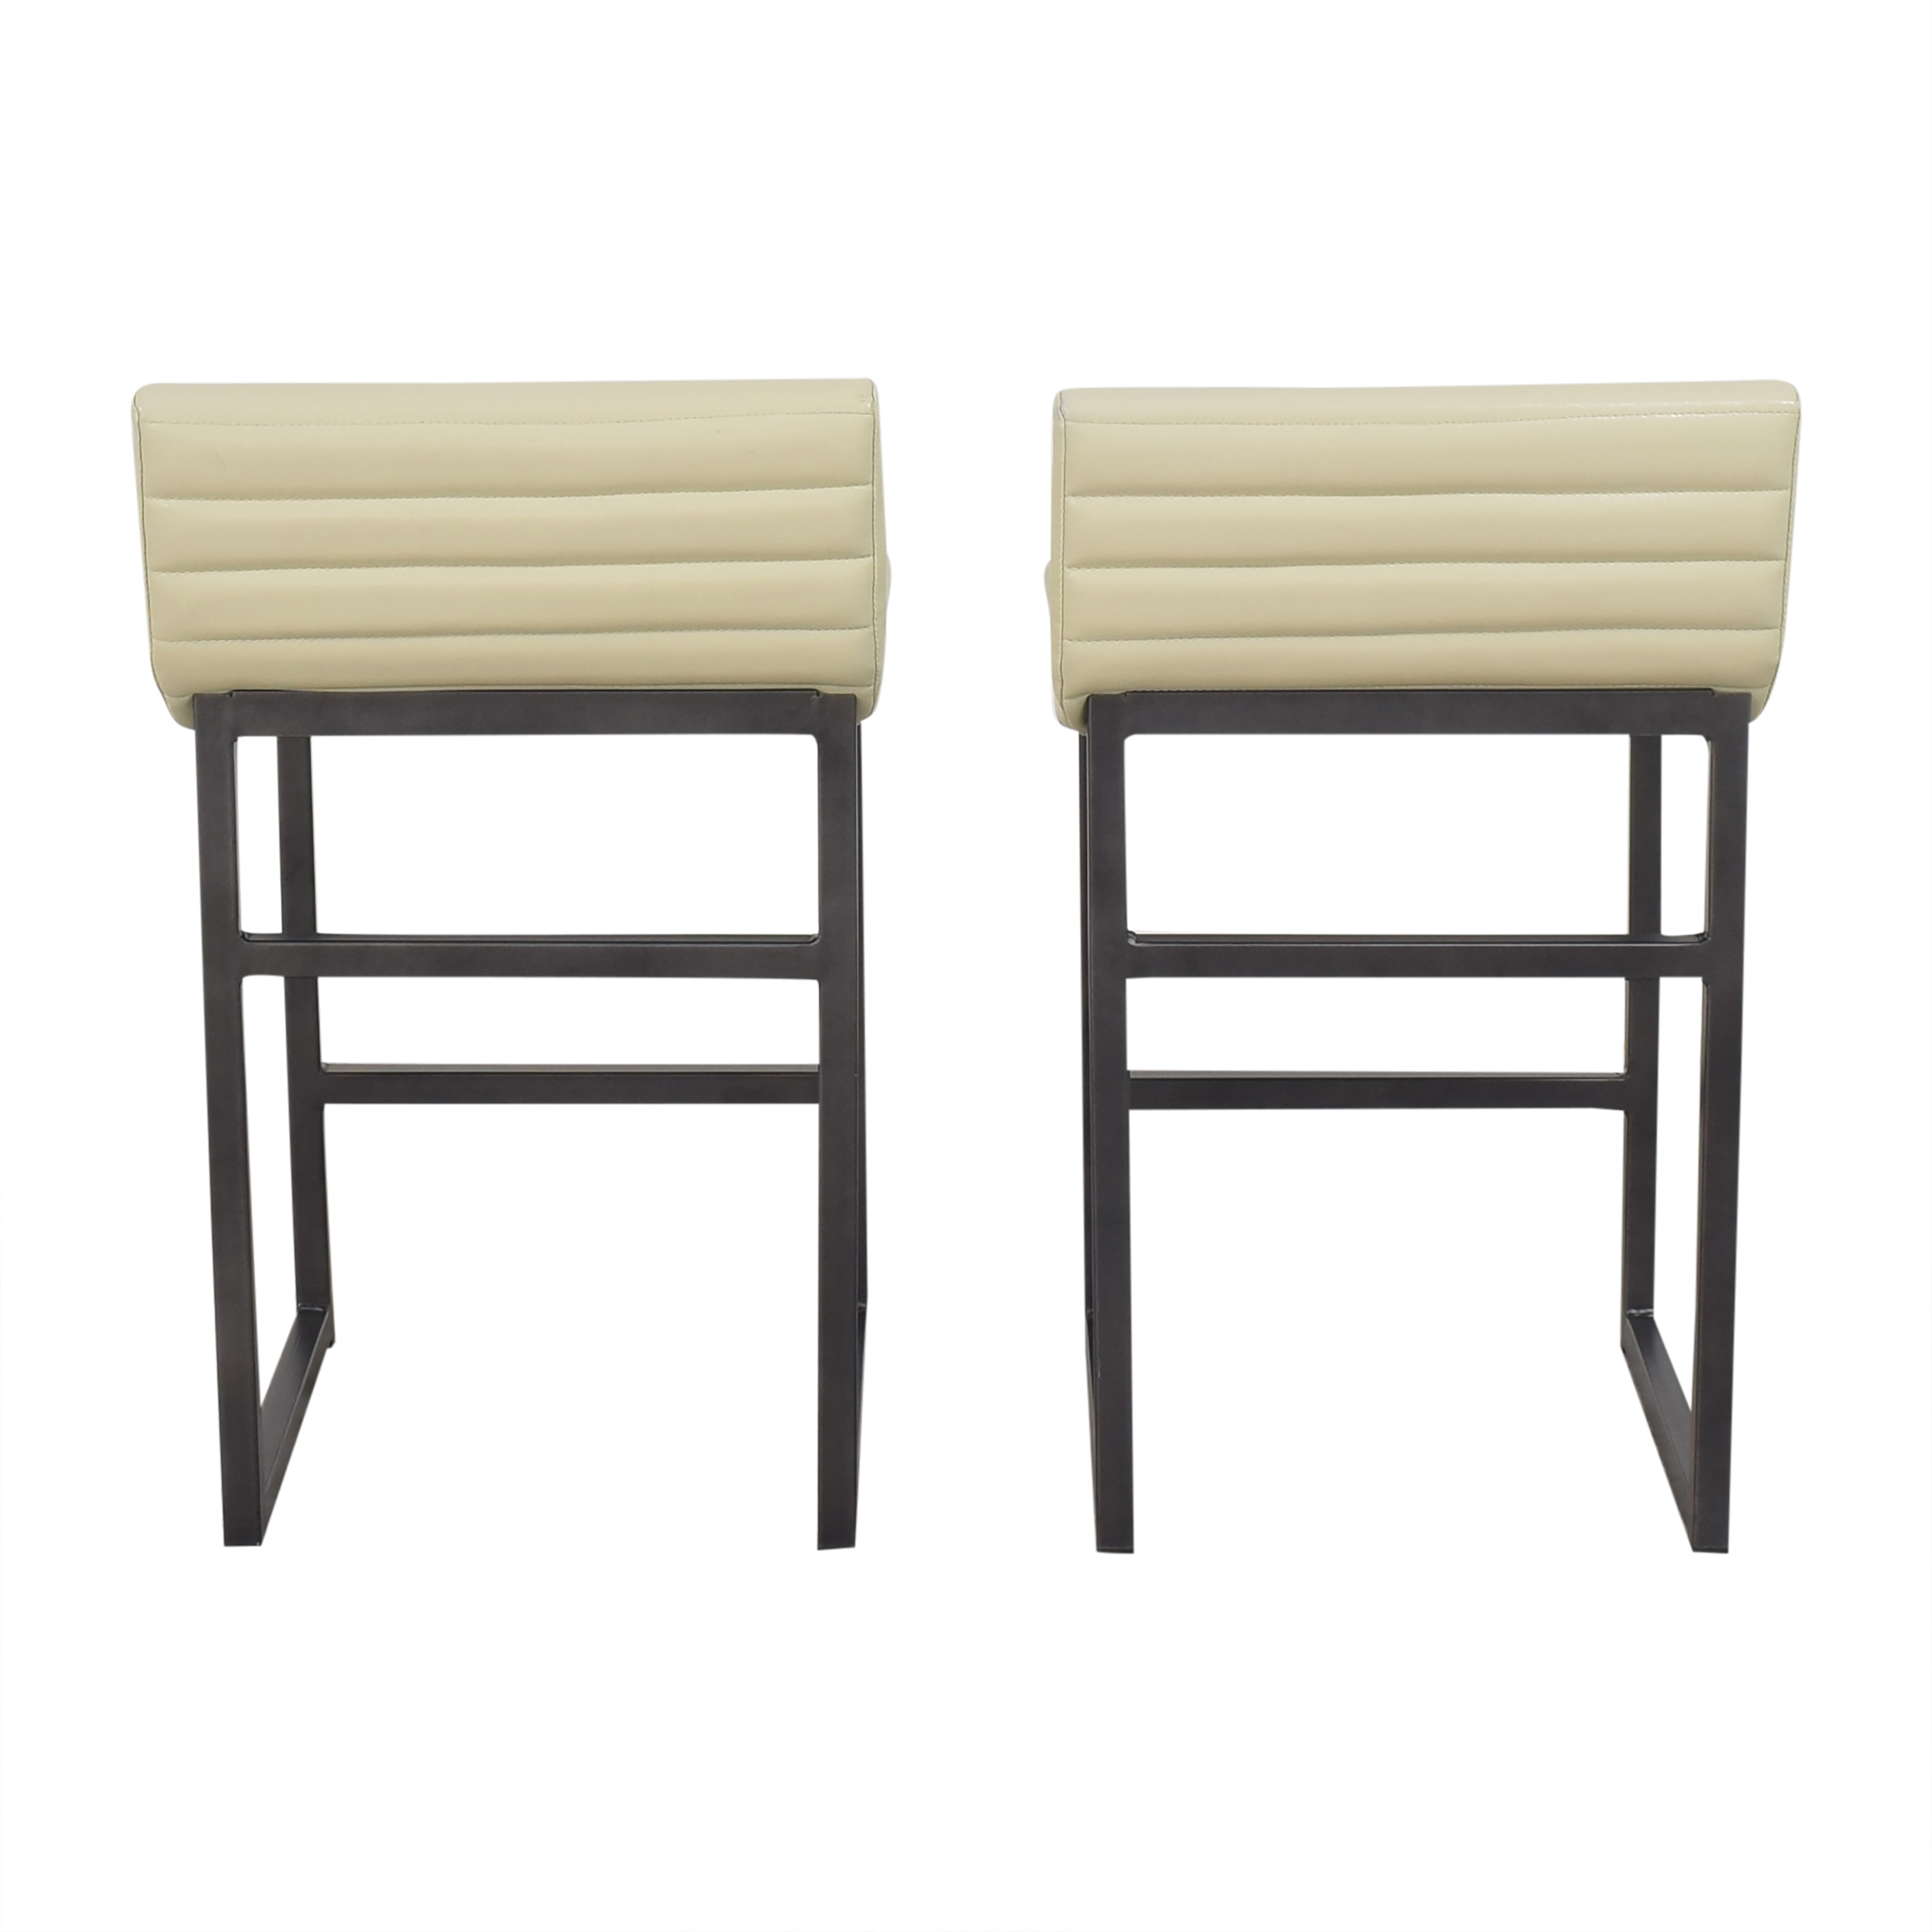 Dimensions Furniture Counter Stools / Stools